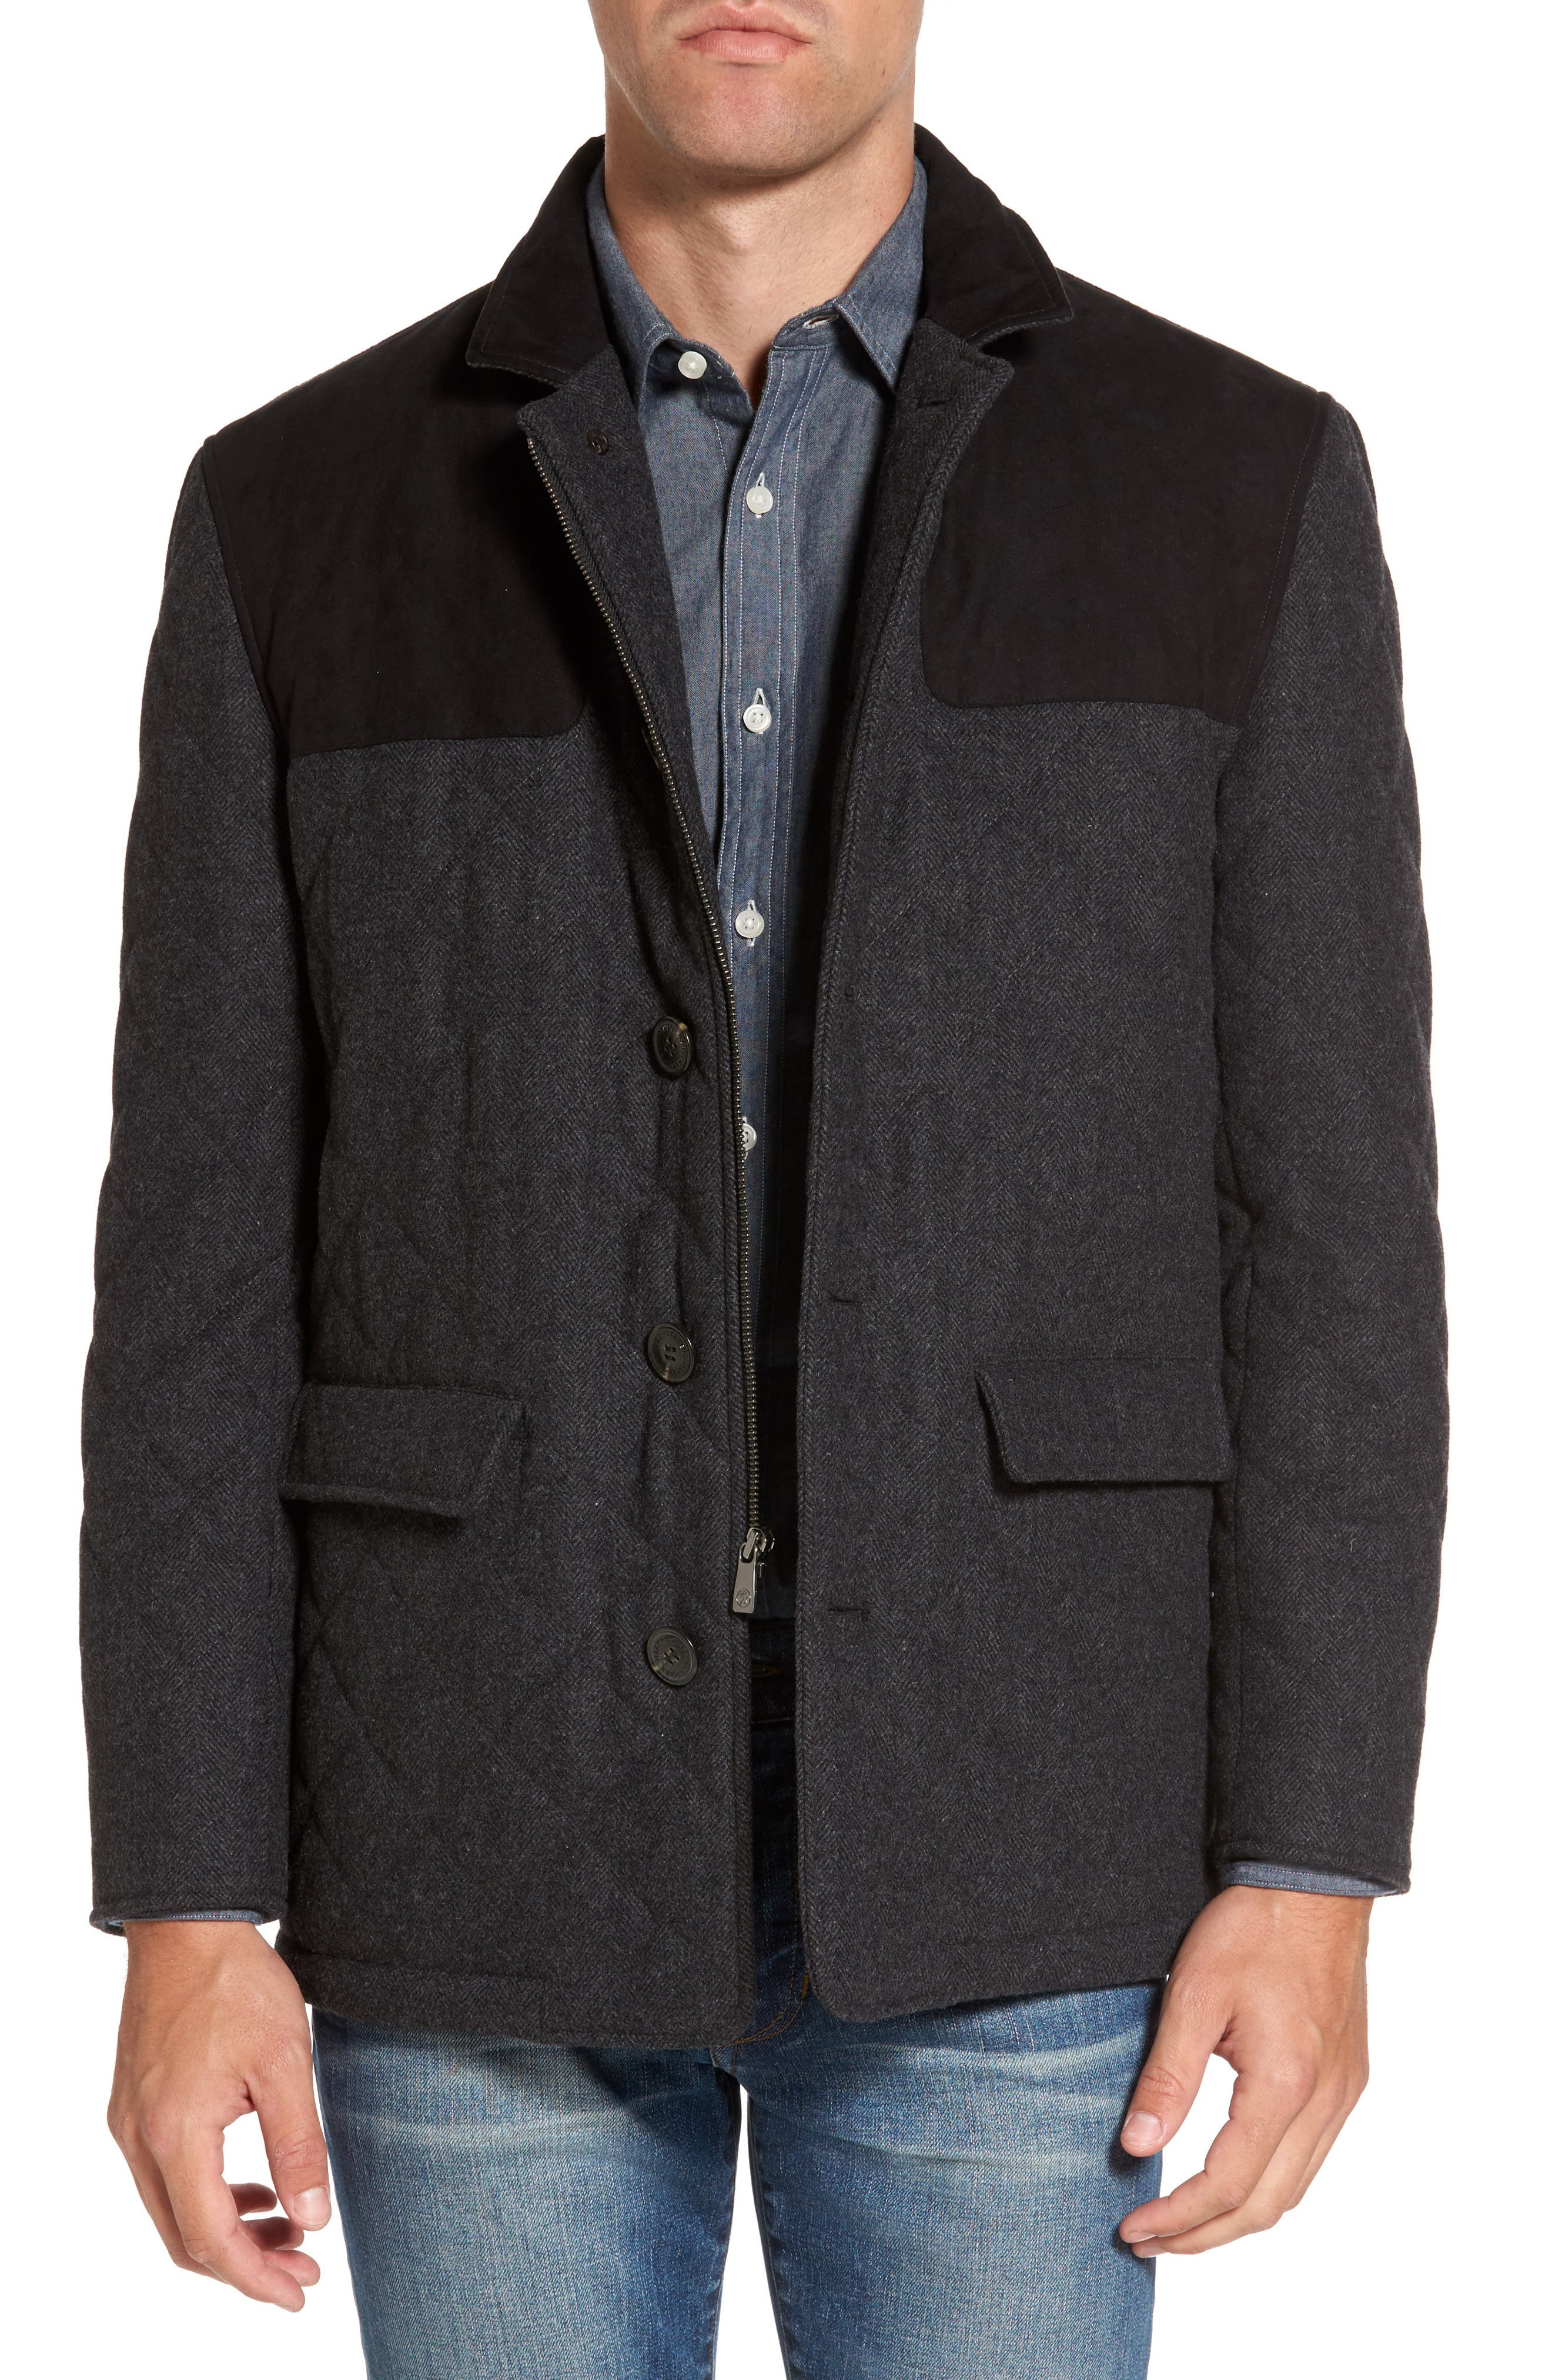 Main Image - Hart Schaffner Marx 'Shooter' Wool Blend Quilted Jacket